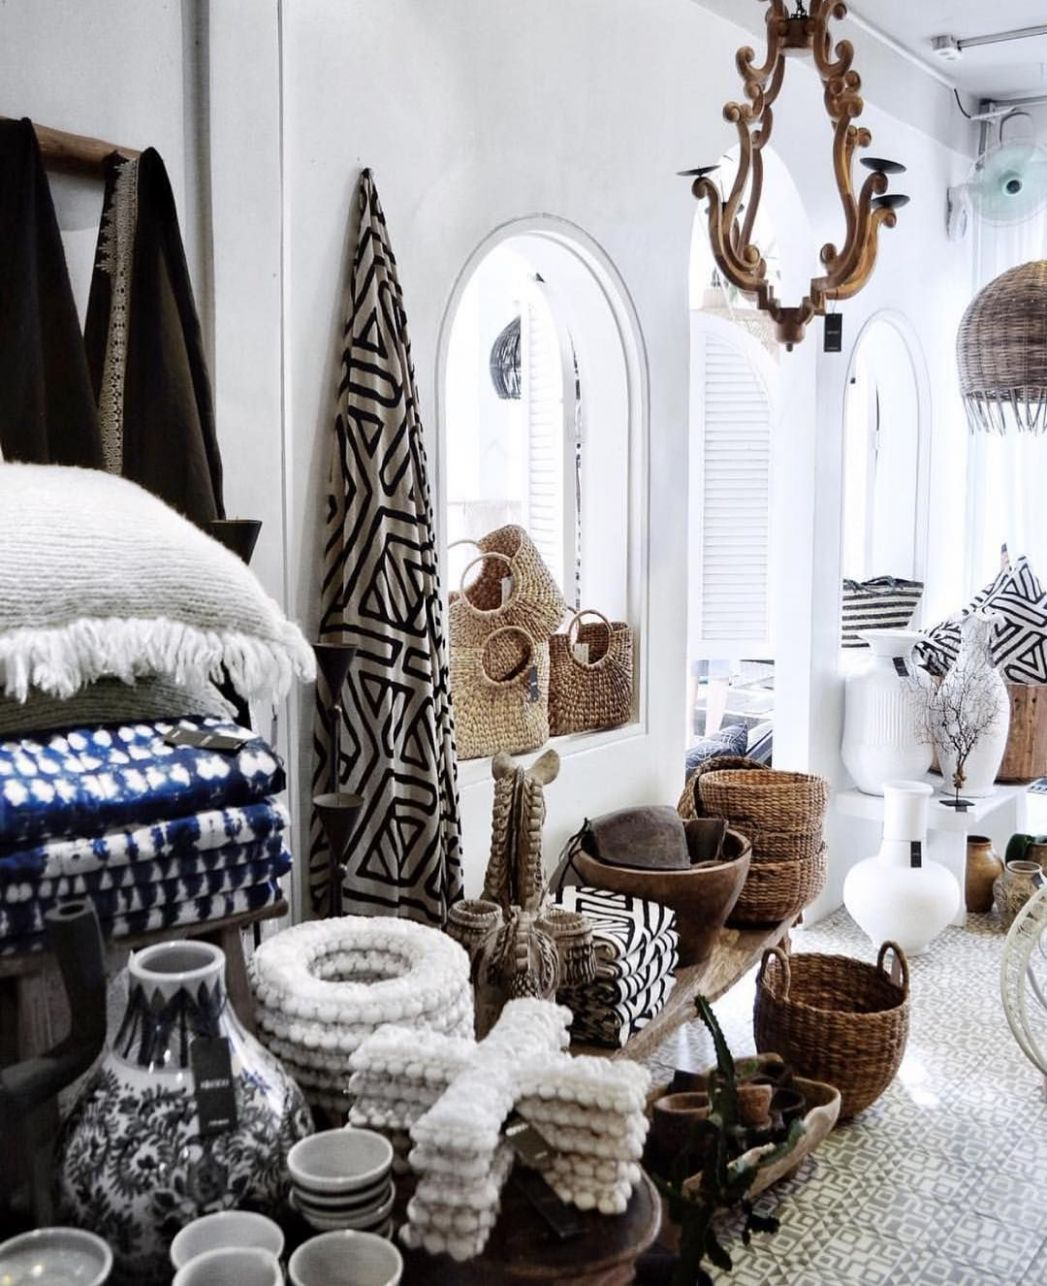 Kim Soo Home - a world famous textile and decor shop located in ...